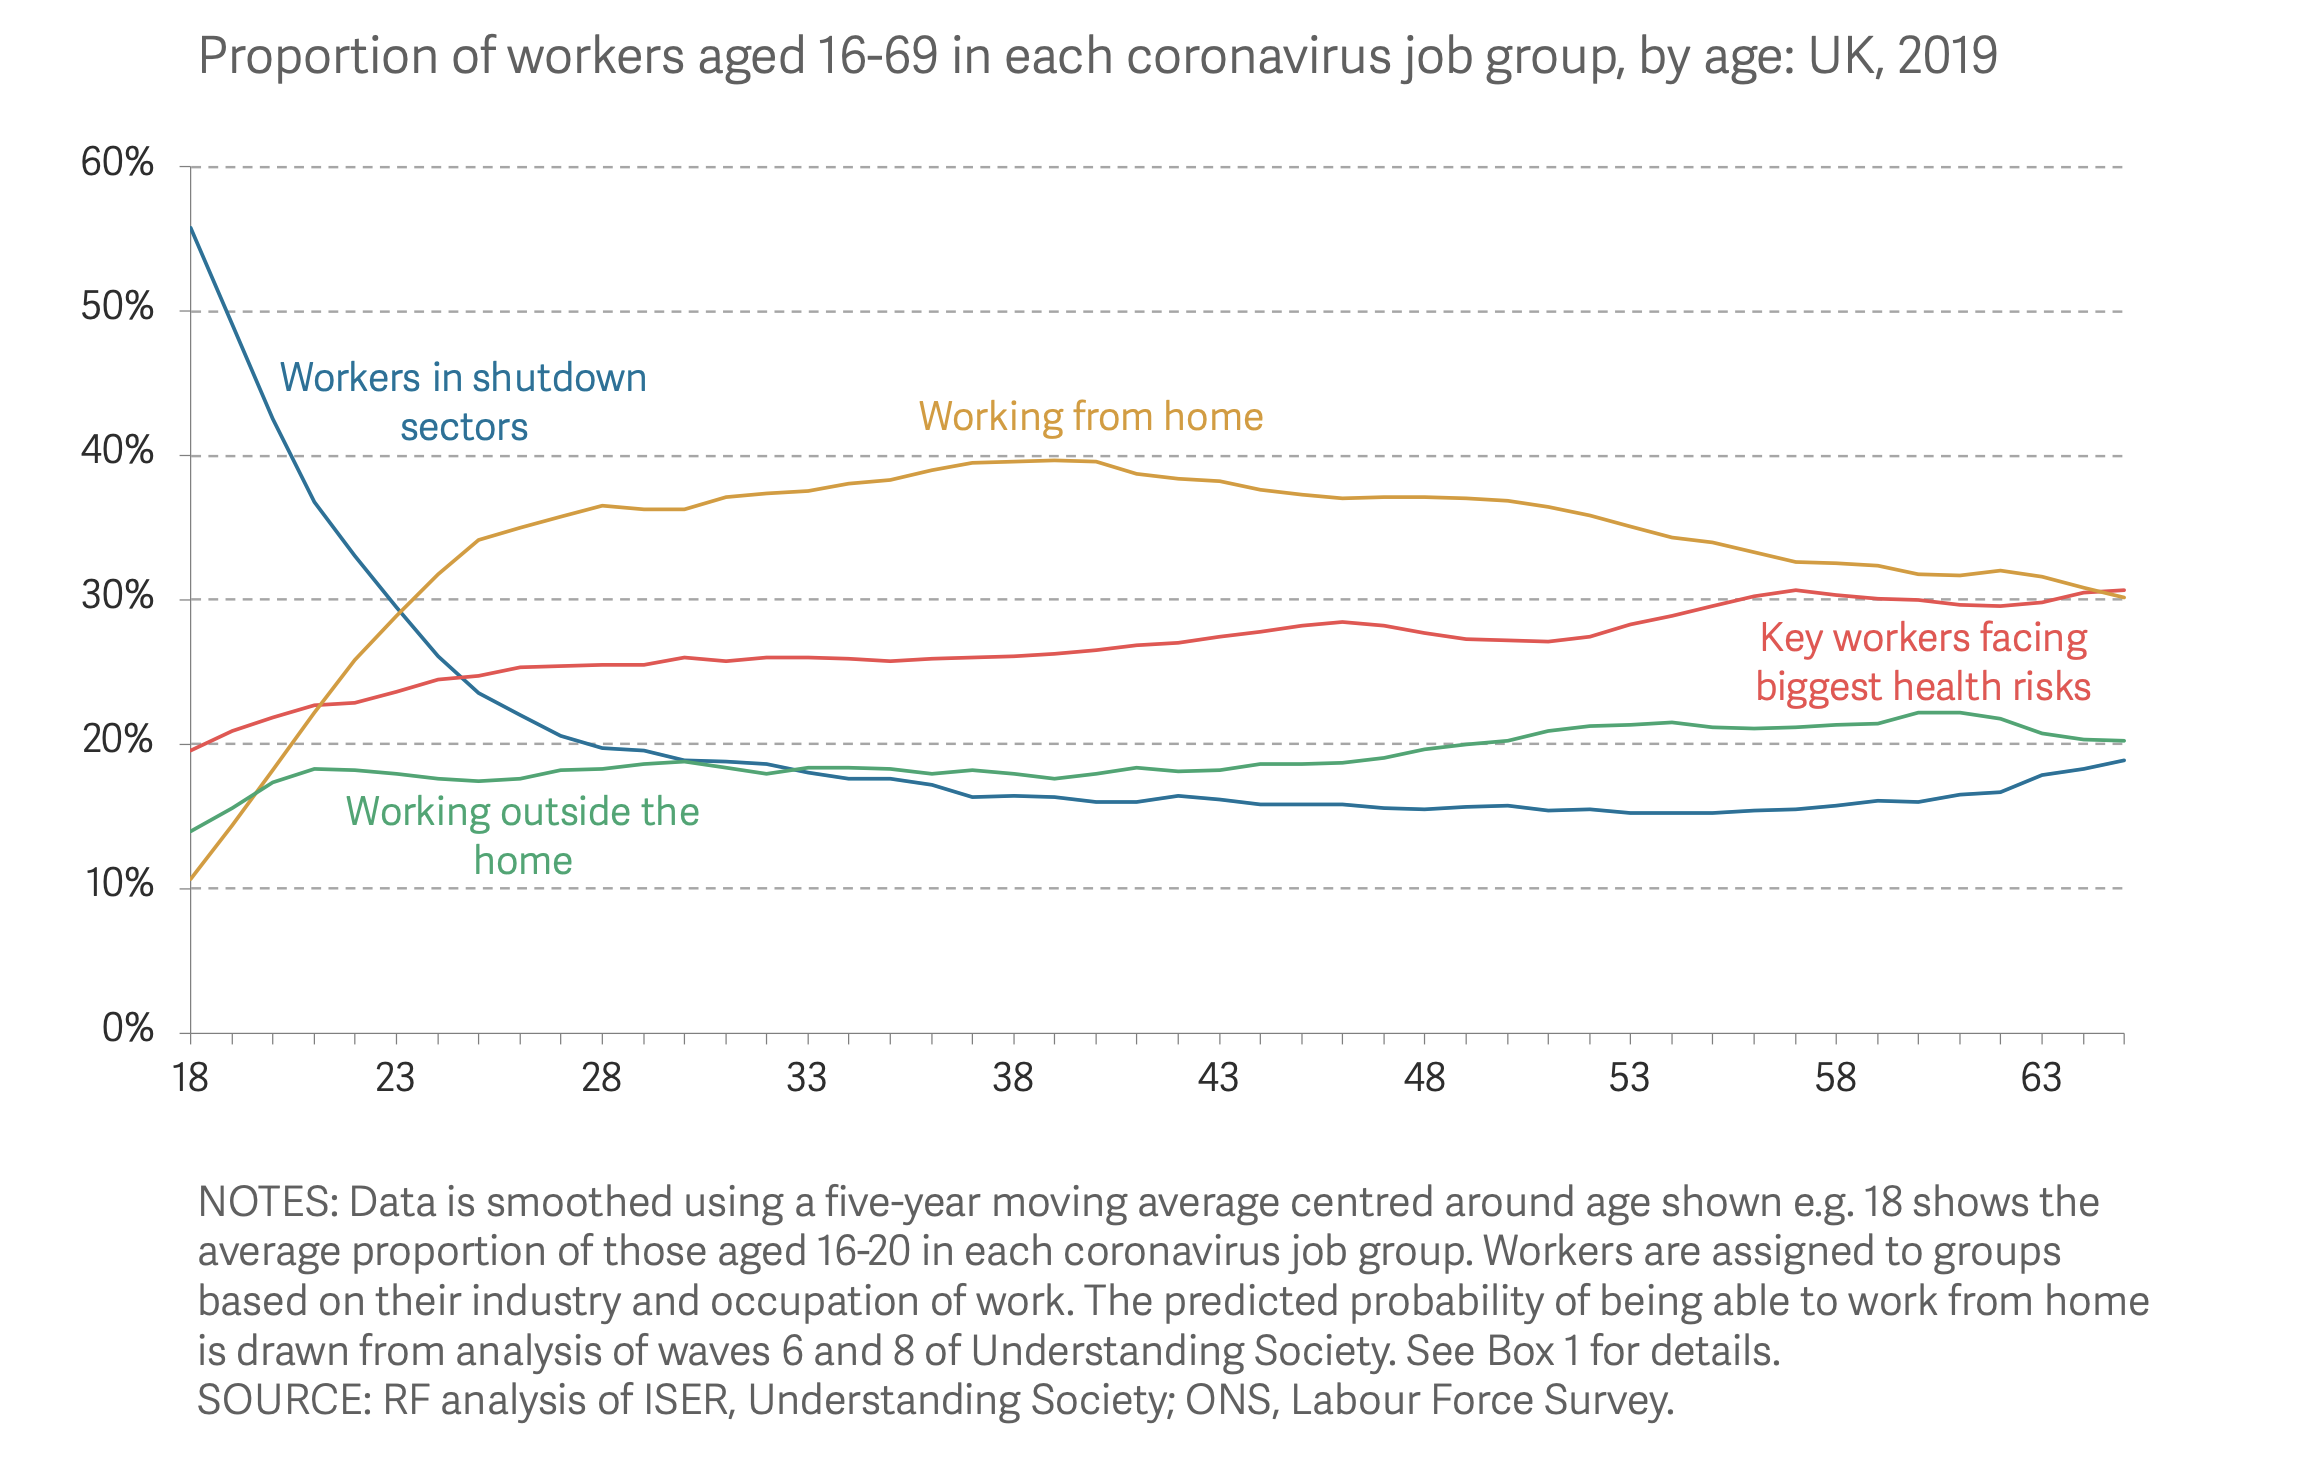 Workers aged 16-24 are twice as likely to work in shutdown sectors as older workers